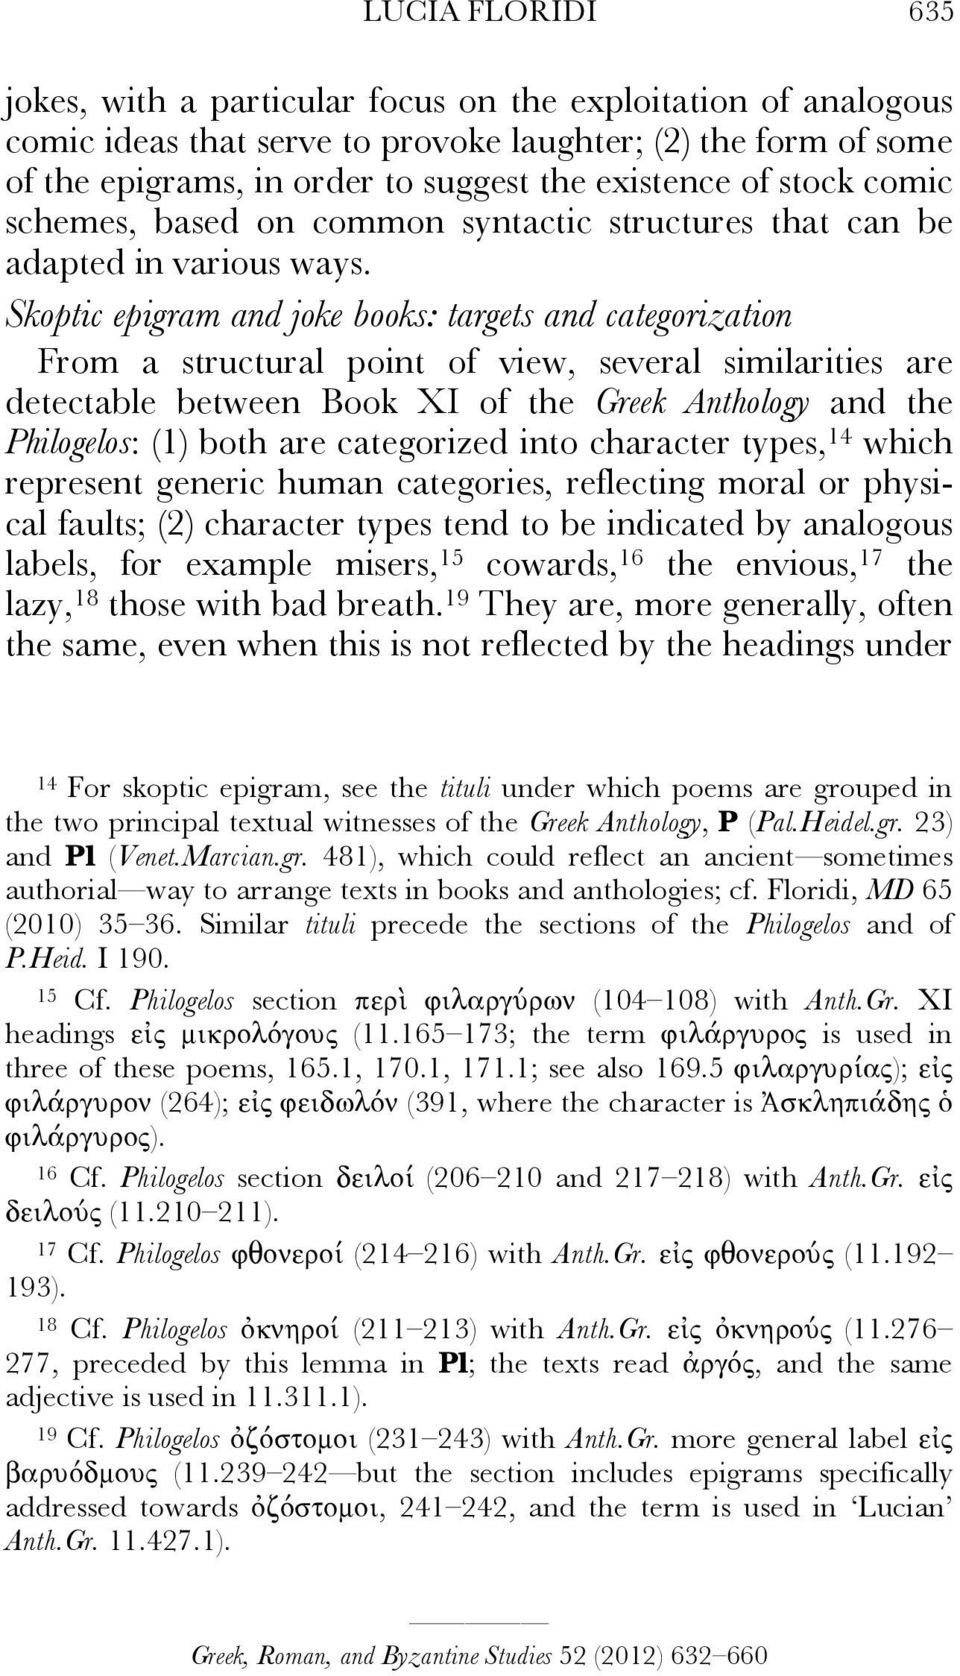 Skoptic epigram and joke books: targets and categorization From a structural point of view, several similarities are detectable between Book XI of the Greek Anthology and the Philogelos: (1) both are